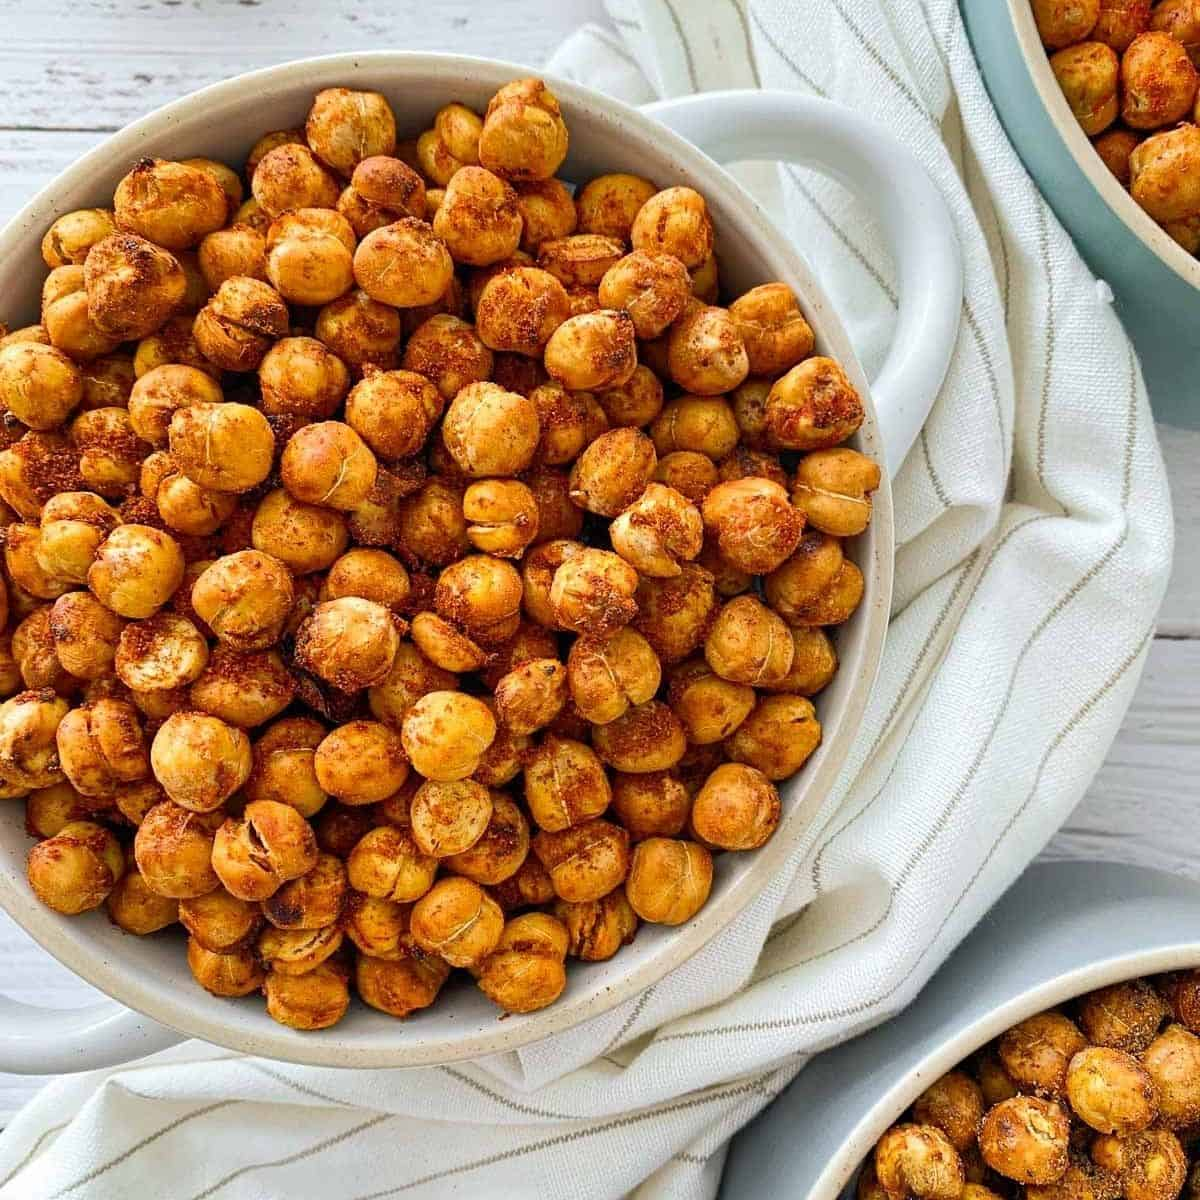 white bowl filled with air fried chickpeas.